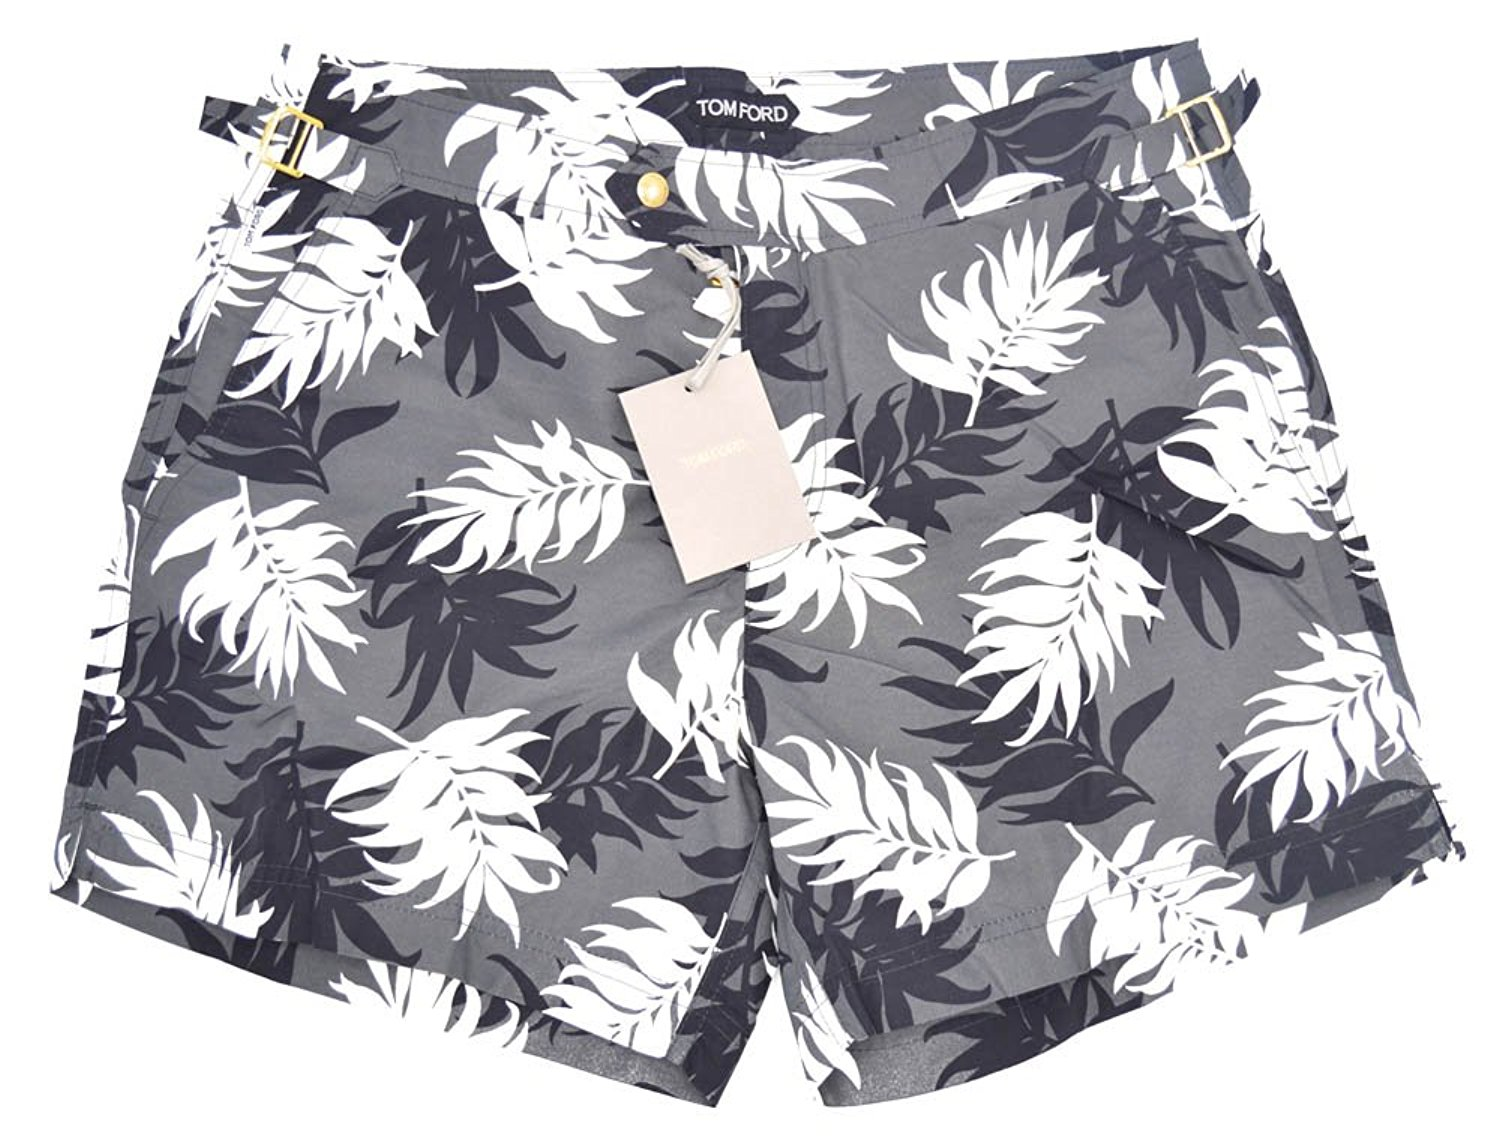 Tom Ford Black & White Floral Swimming Trucks Shorts Bathing Suit Size 48 Euro